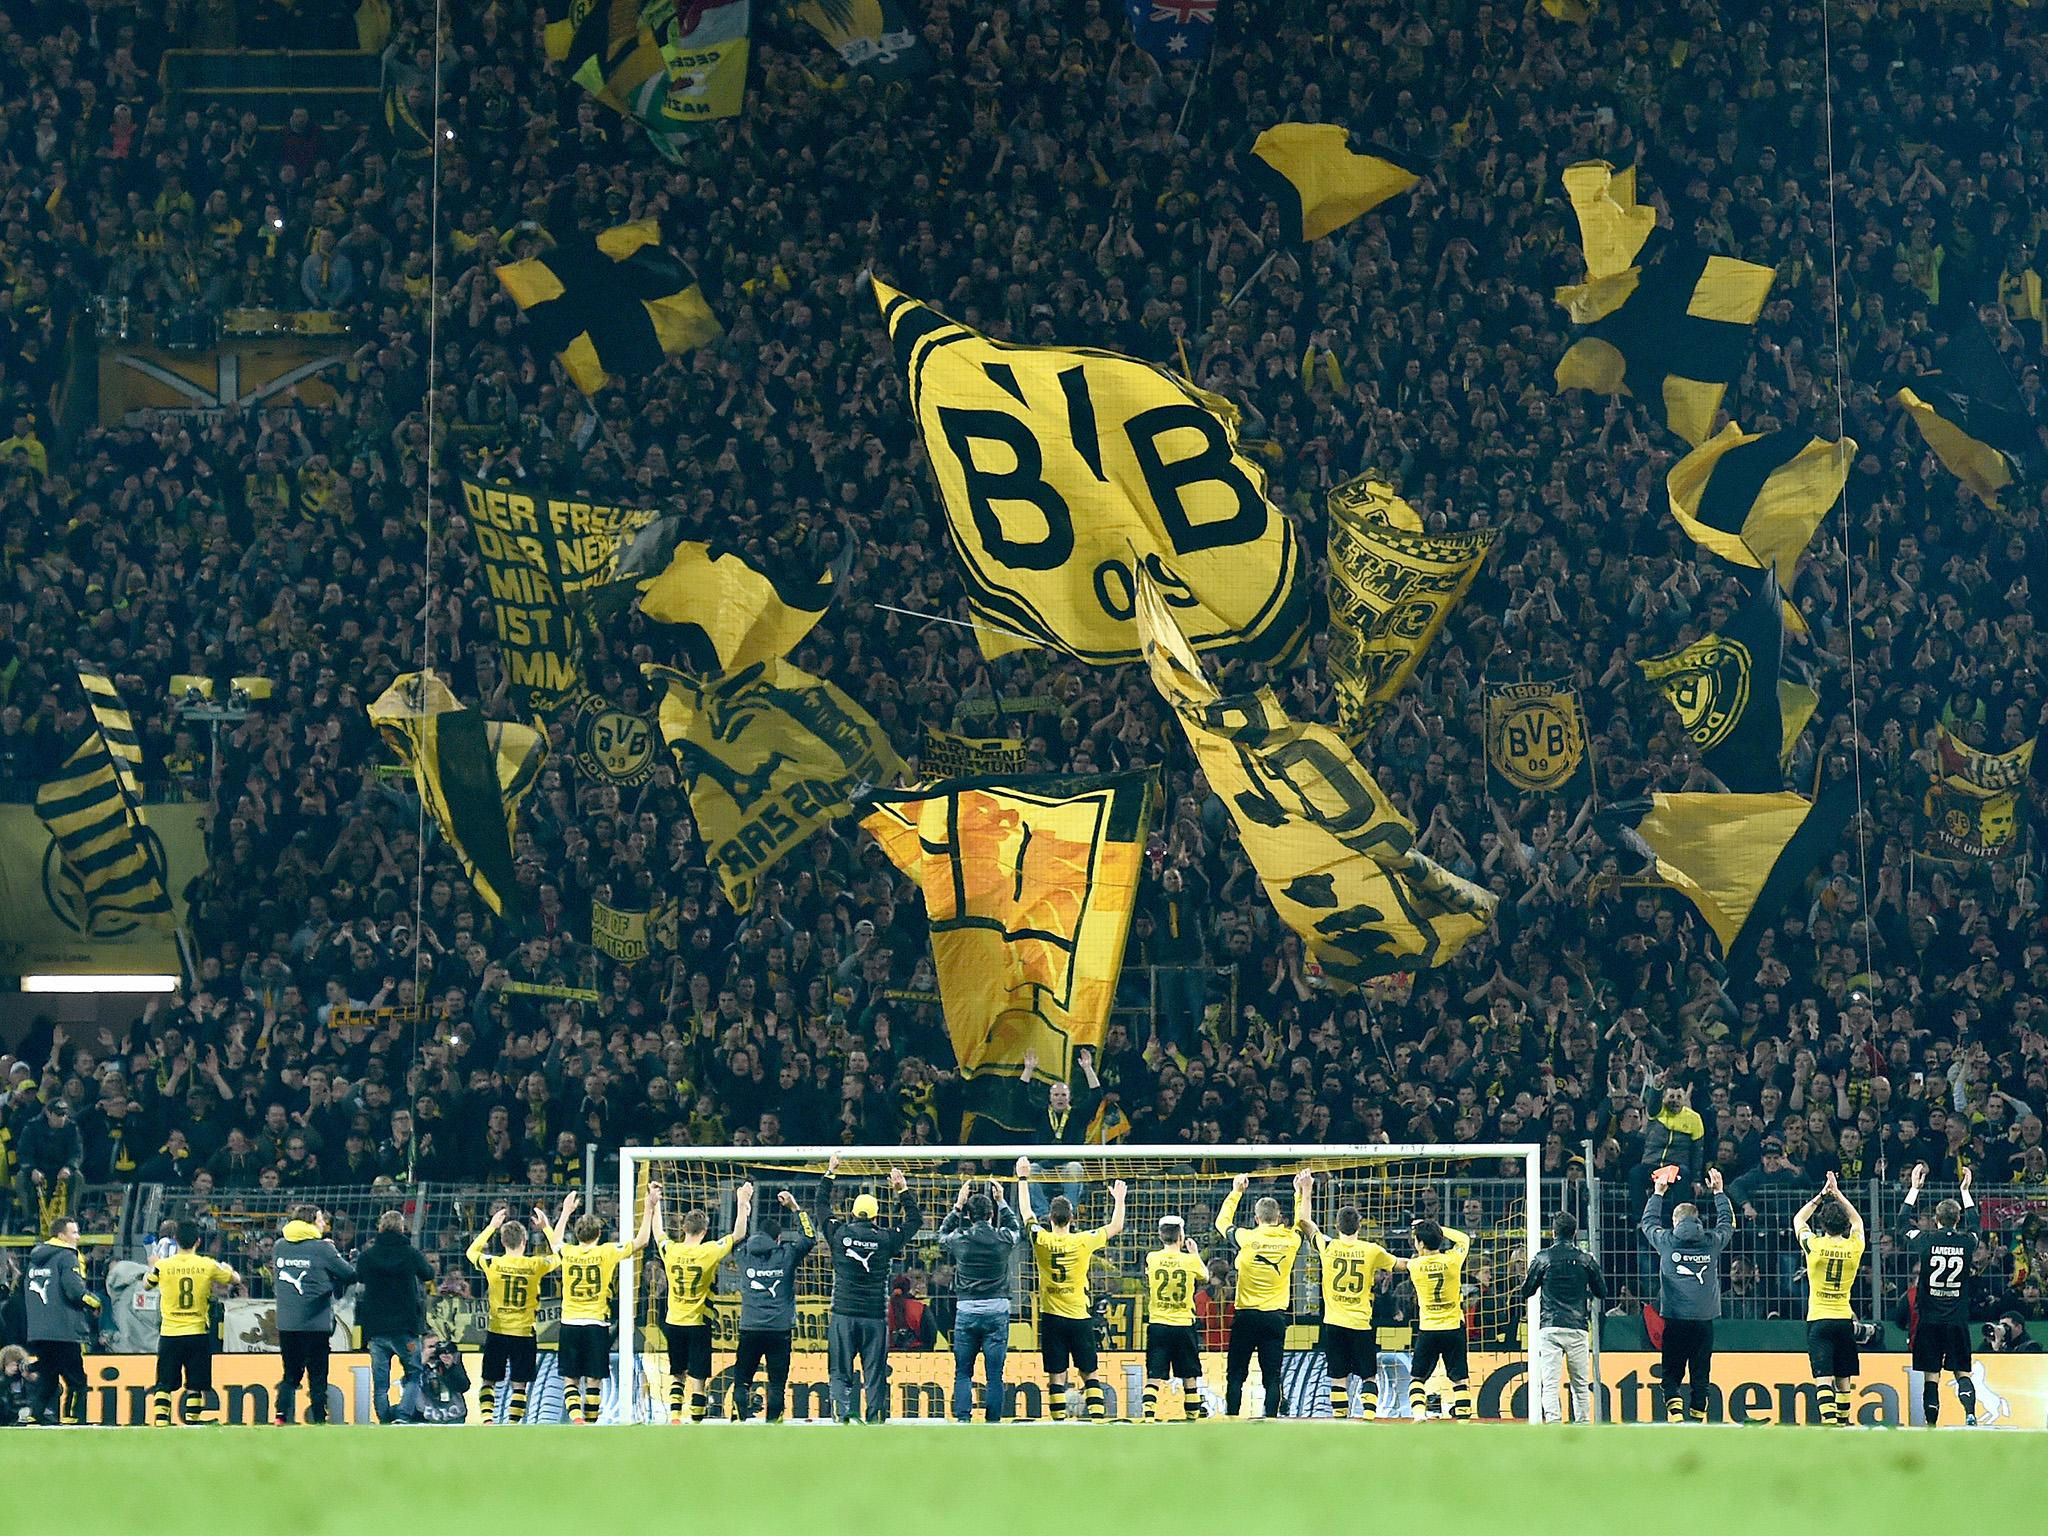 Patrick Wallpaper Hd Borrusia Dortmund Aim Dig At Donald Trump With Wall